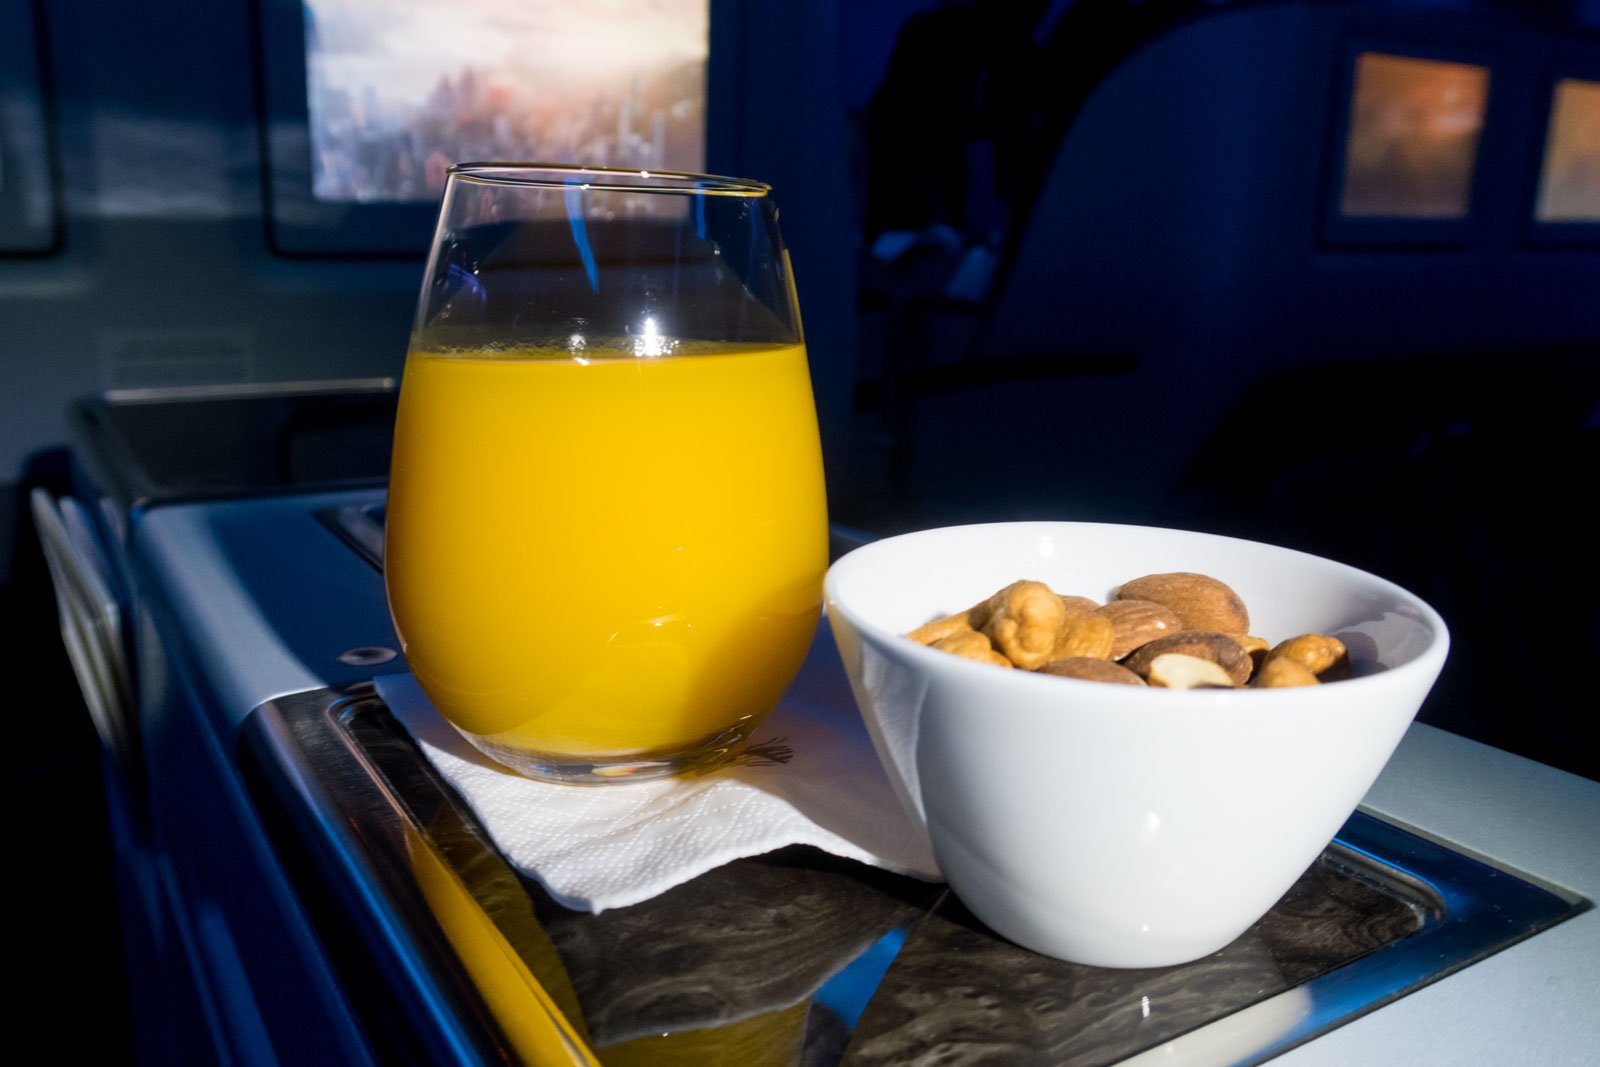 Mango Juice and Nuts Onboard Qatar Airways